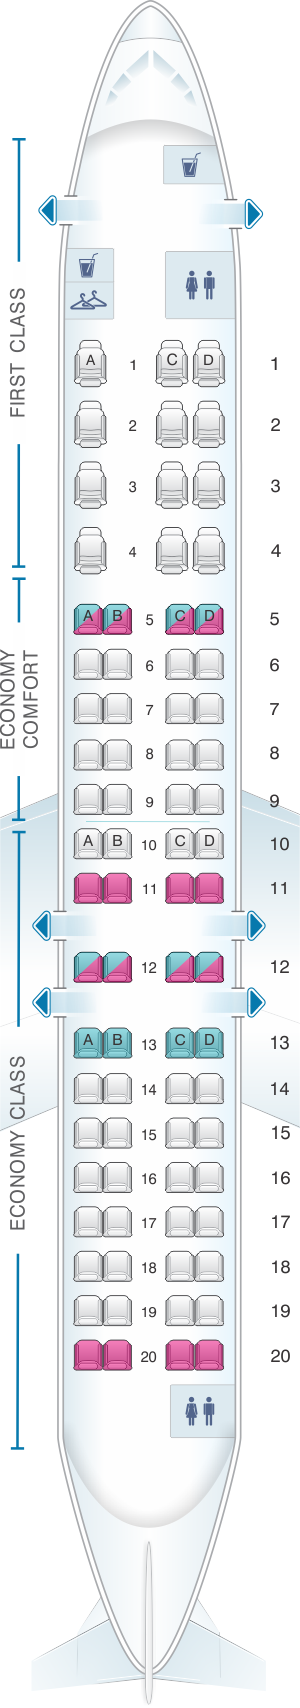 Seat map for Delta Air Lines Bombardier CRJ 900